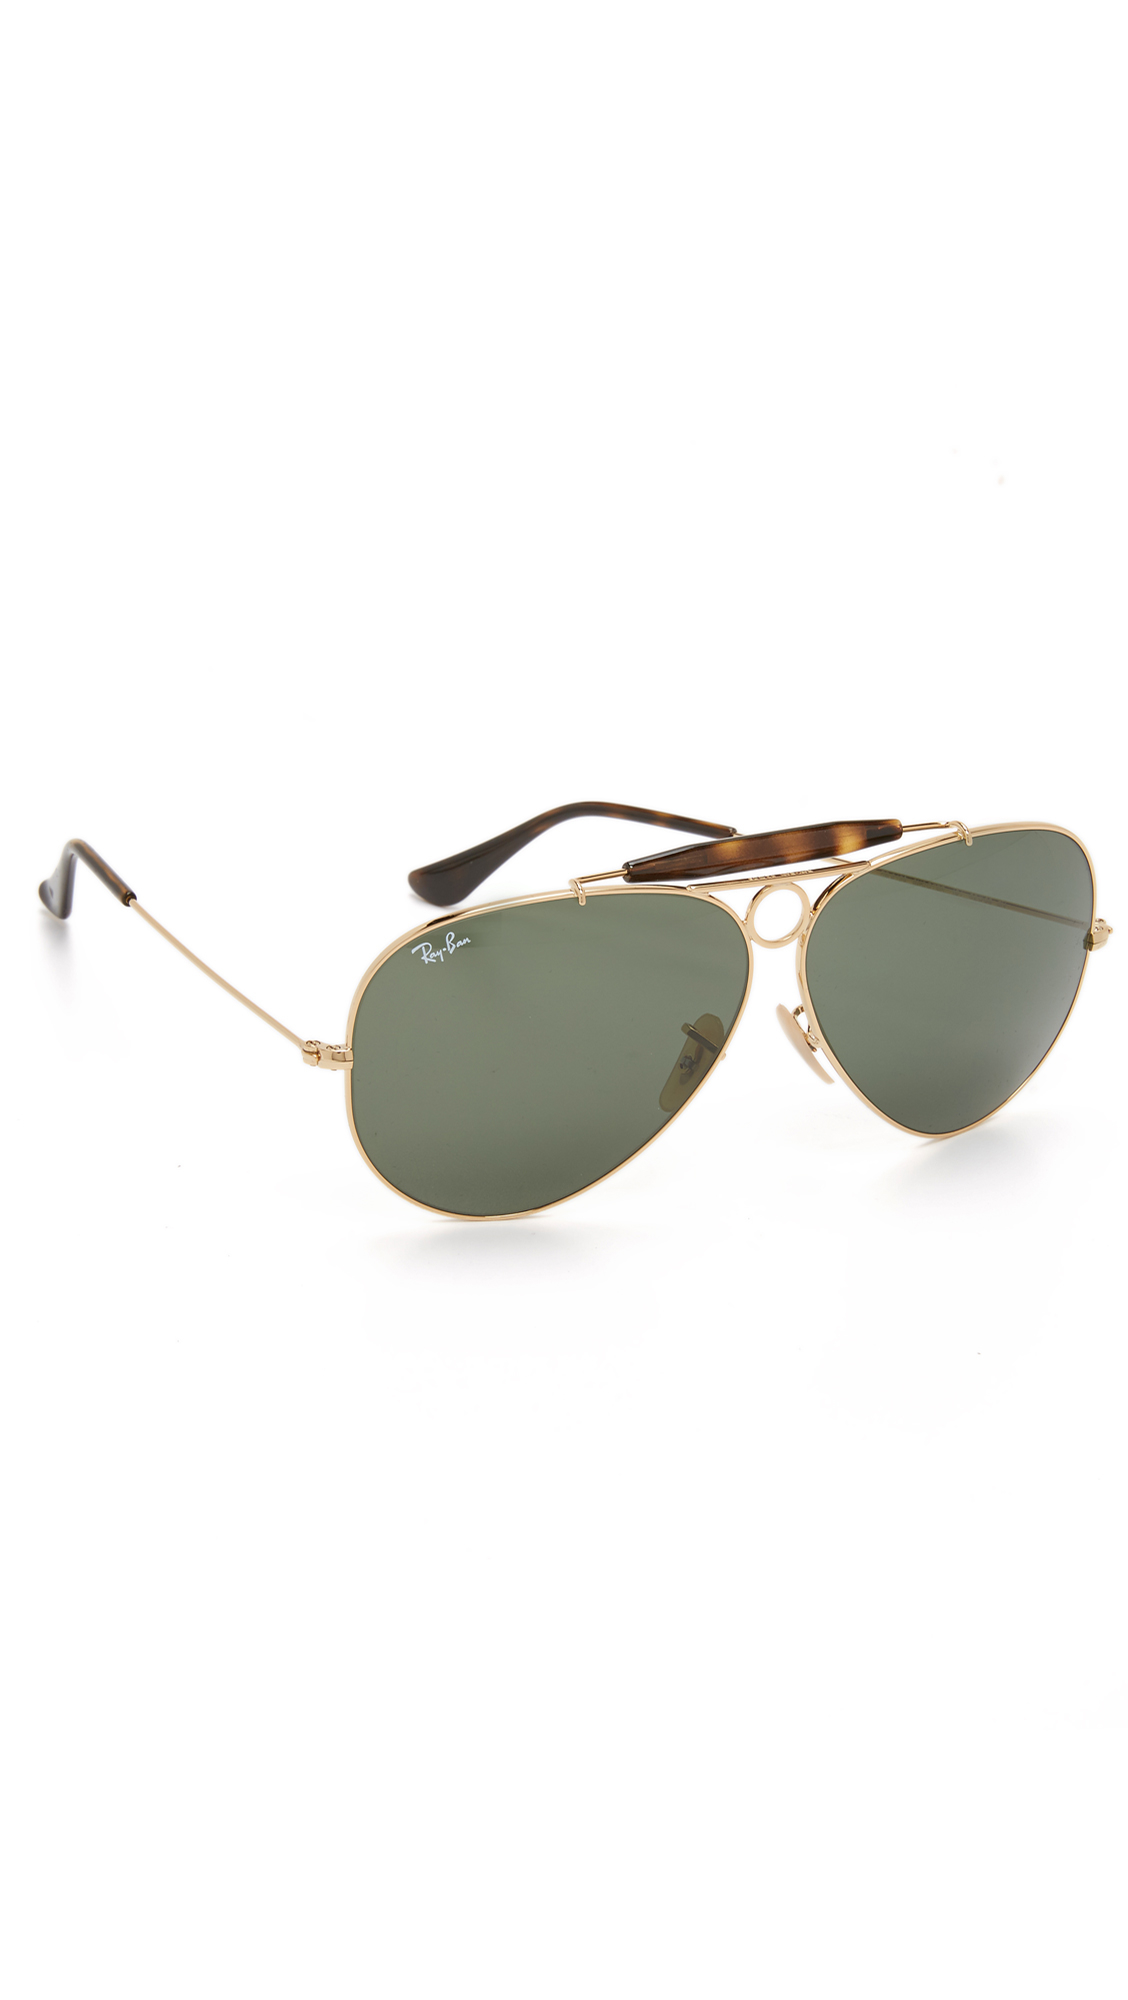 b13f8bd78bd Ray Ban Shooter Sunglasses Large